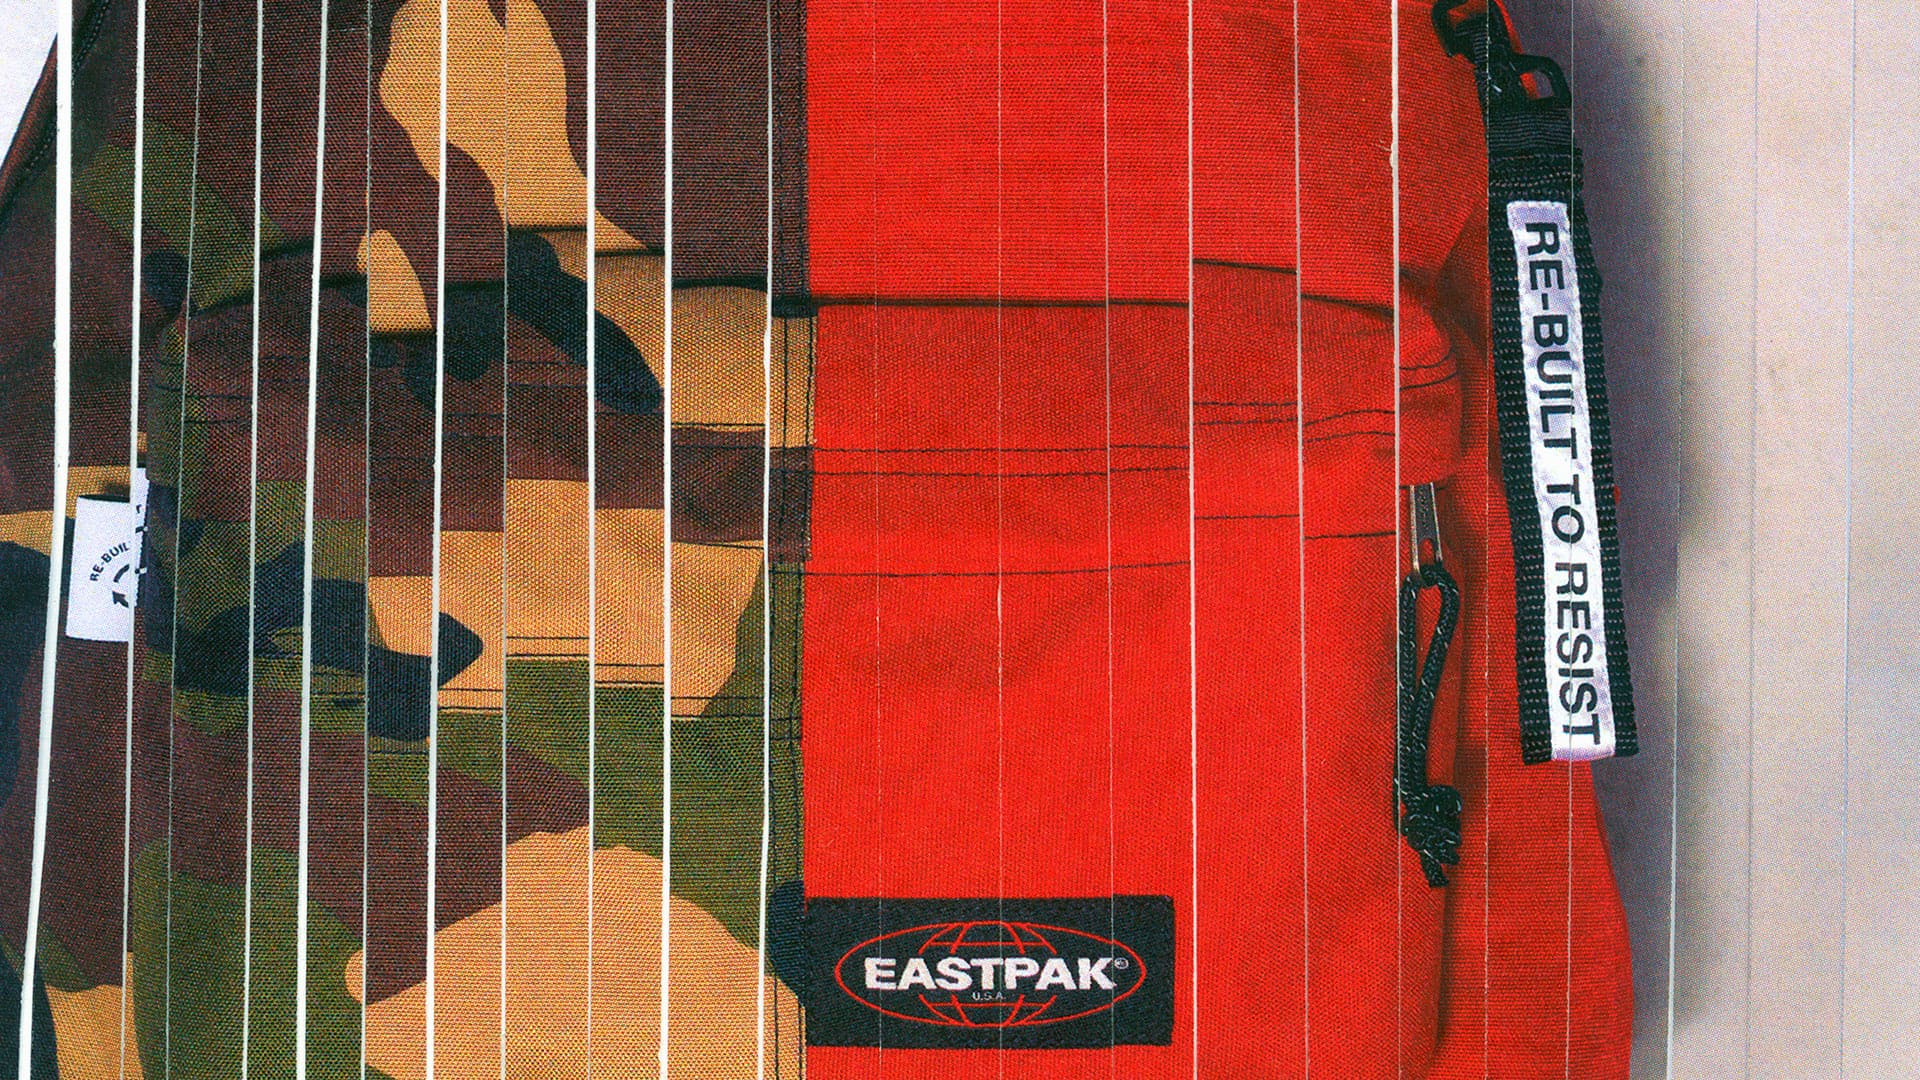 Strictua_Eastpak_Re-built-to-resist_cover